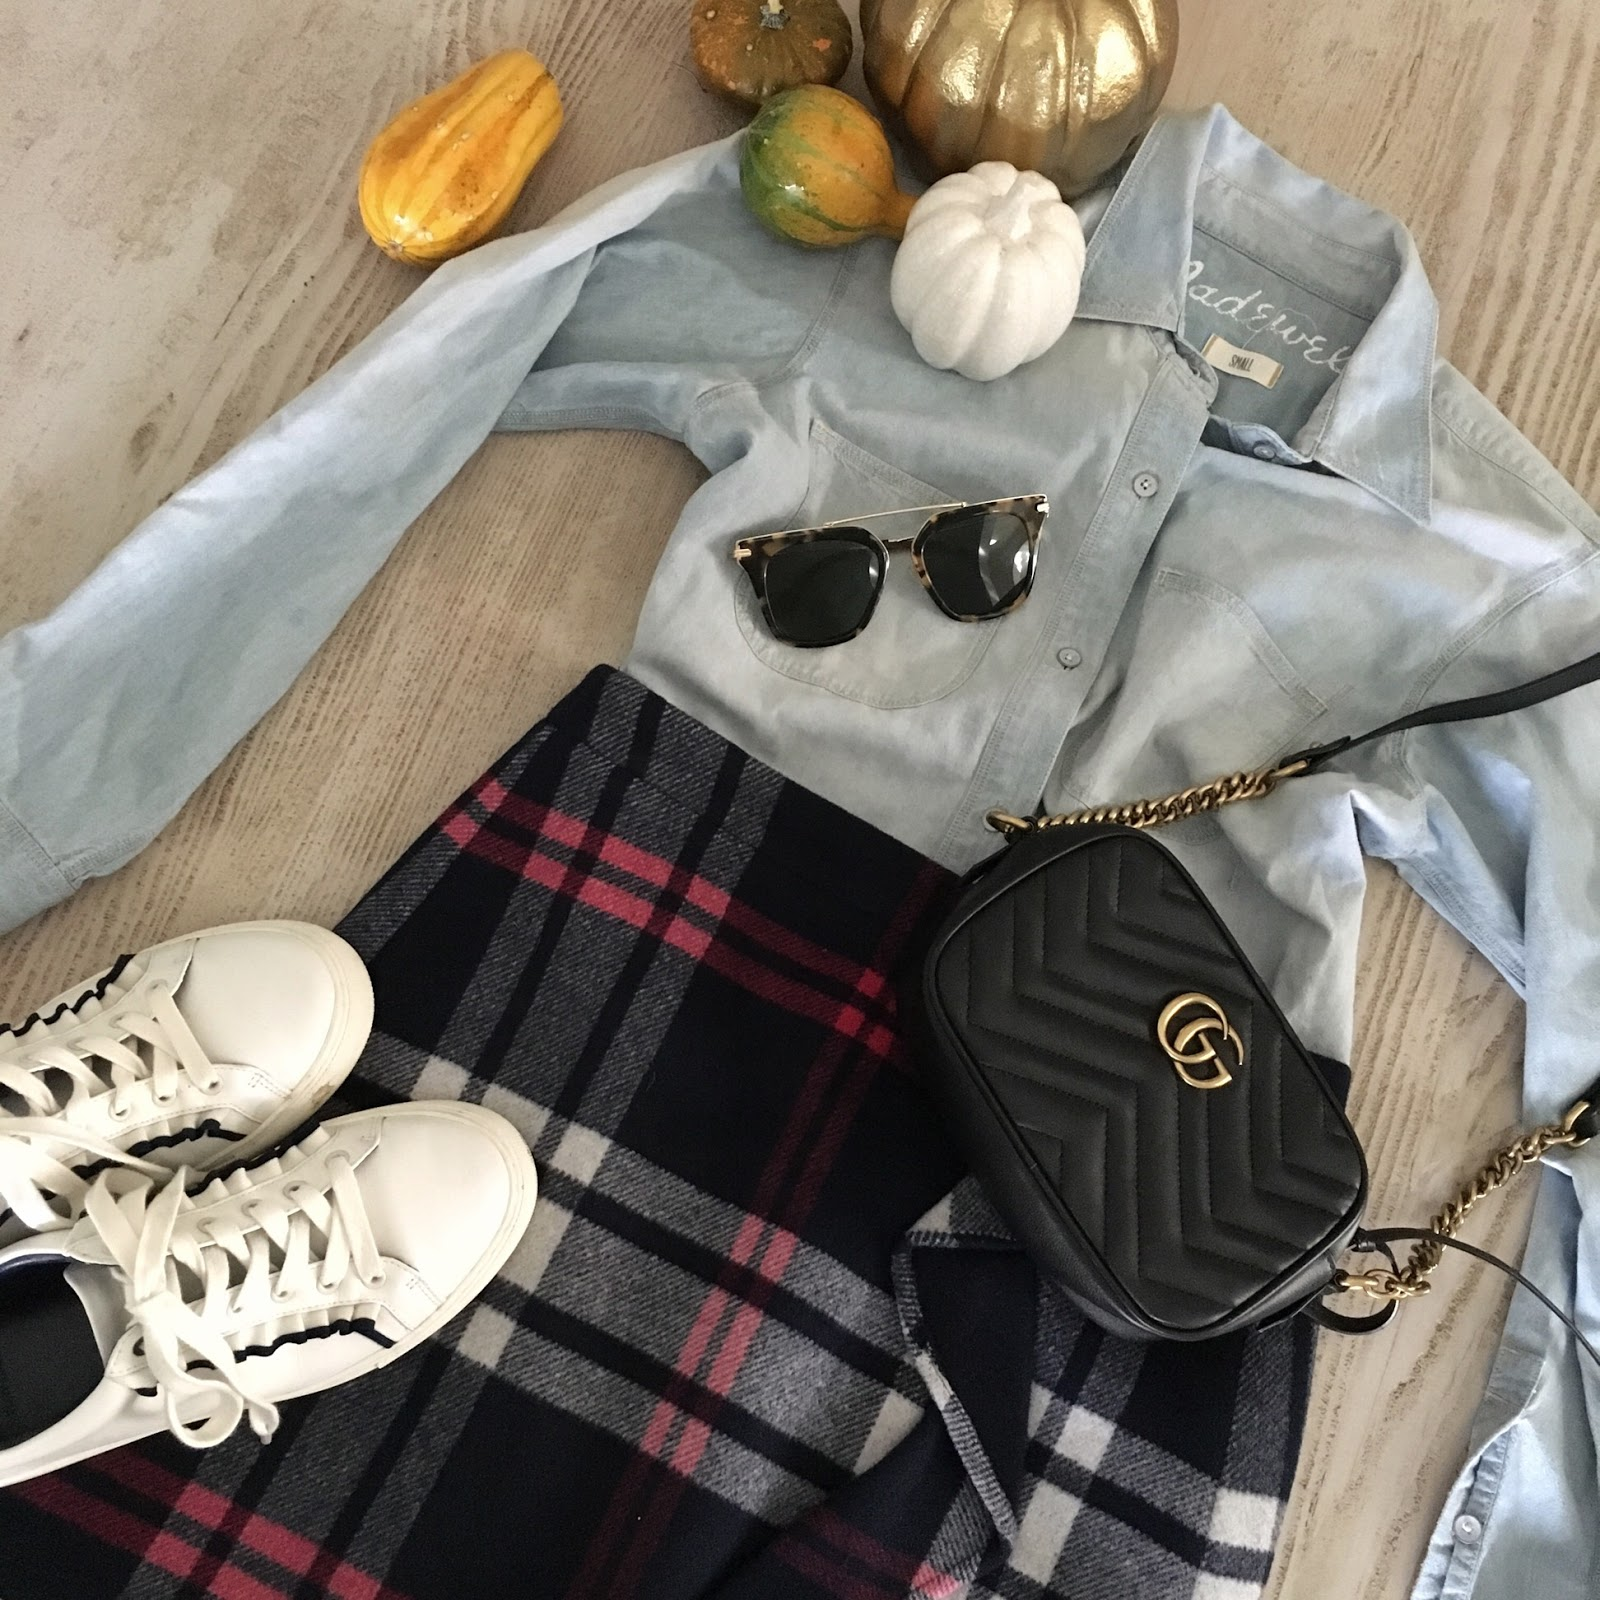 plaid ruffle skirt outfit